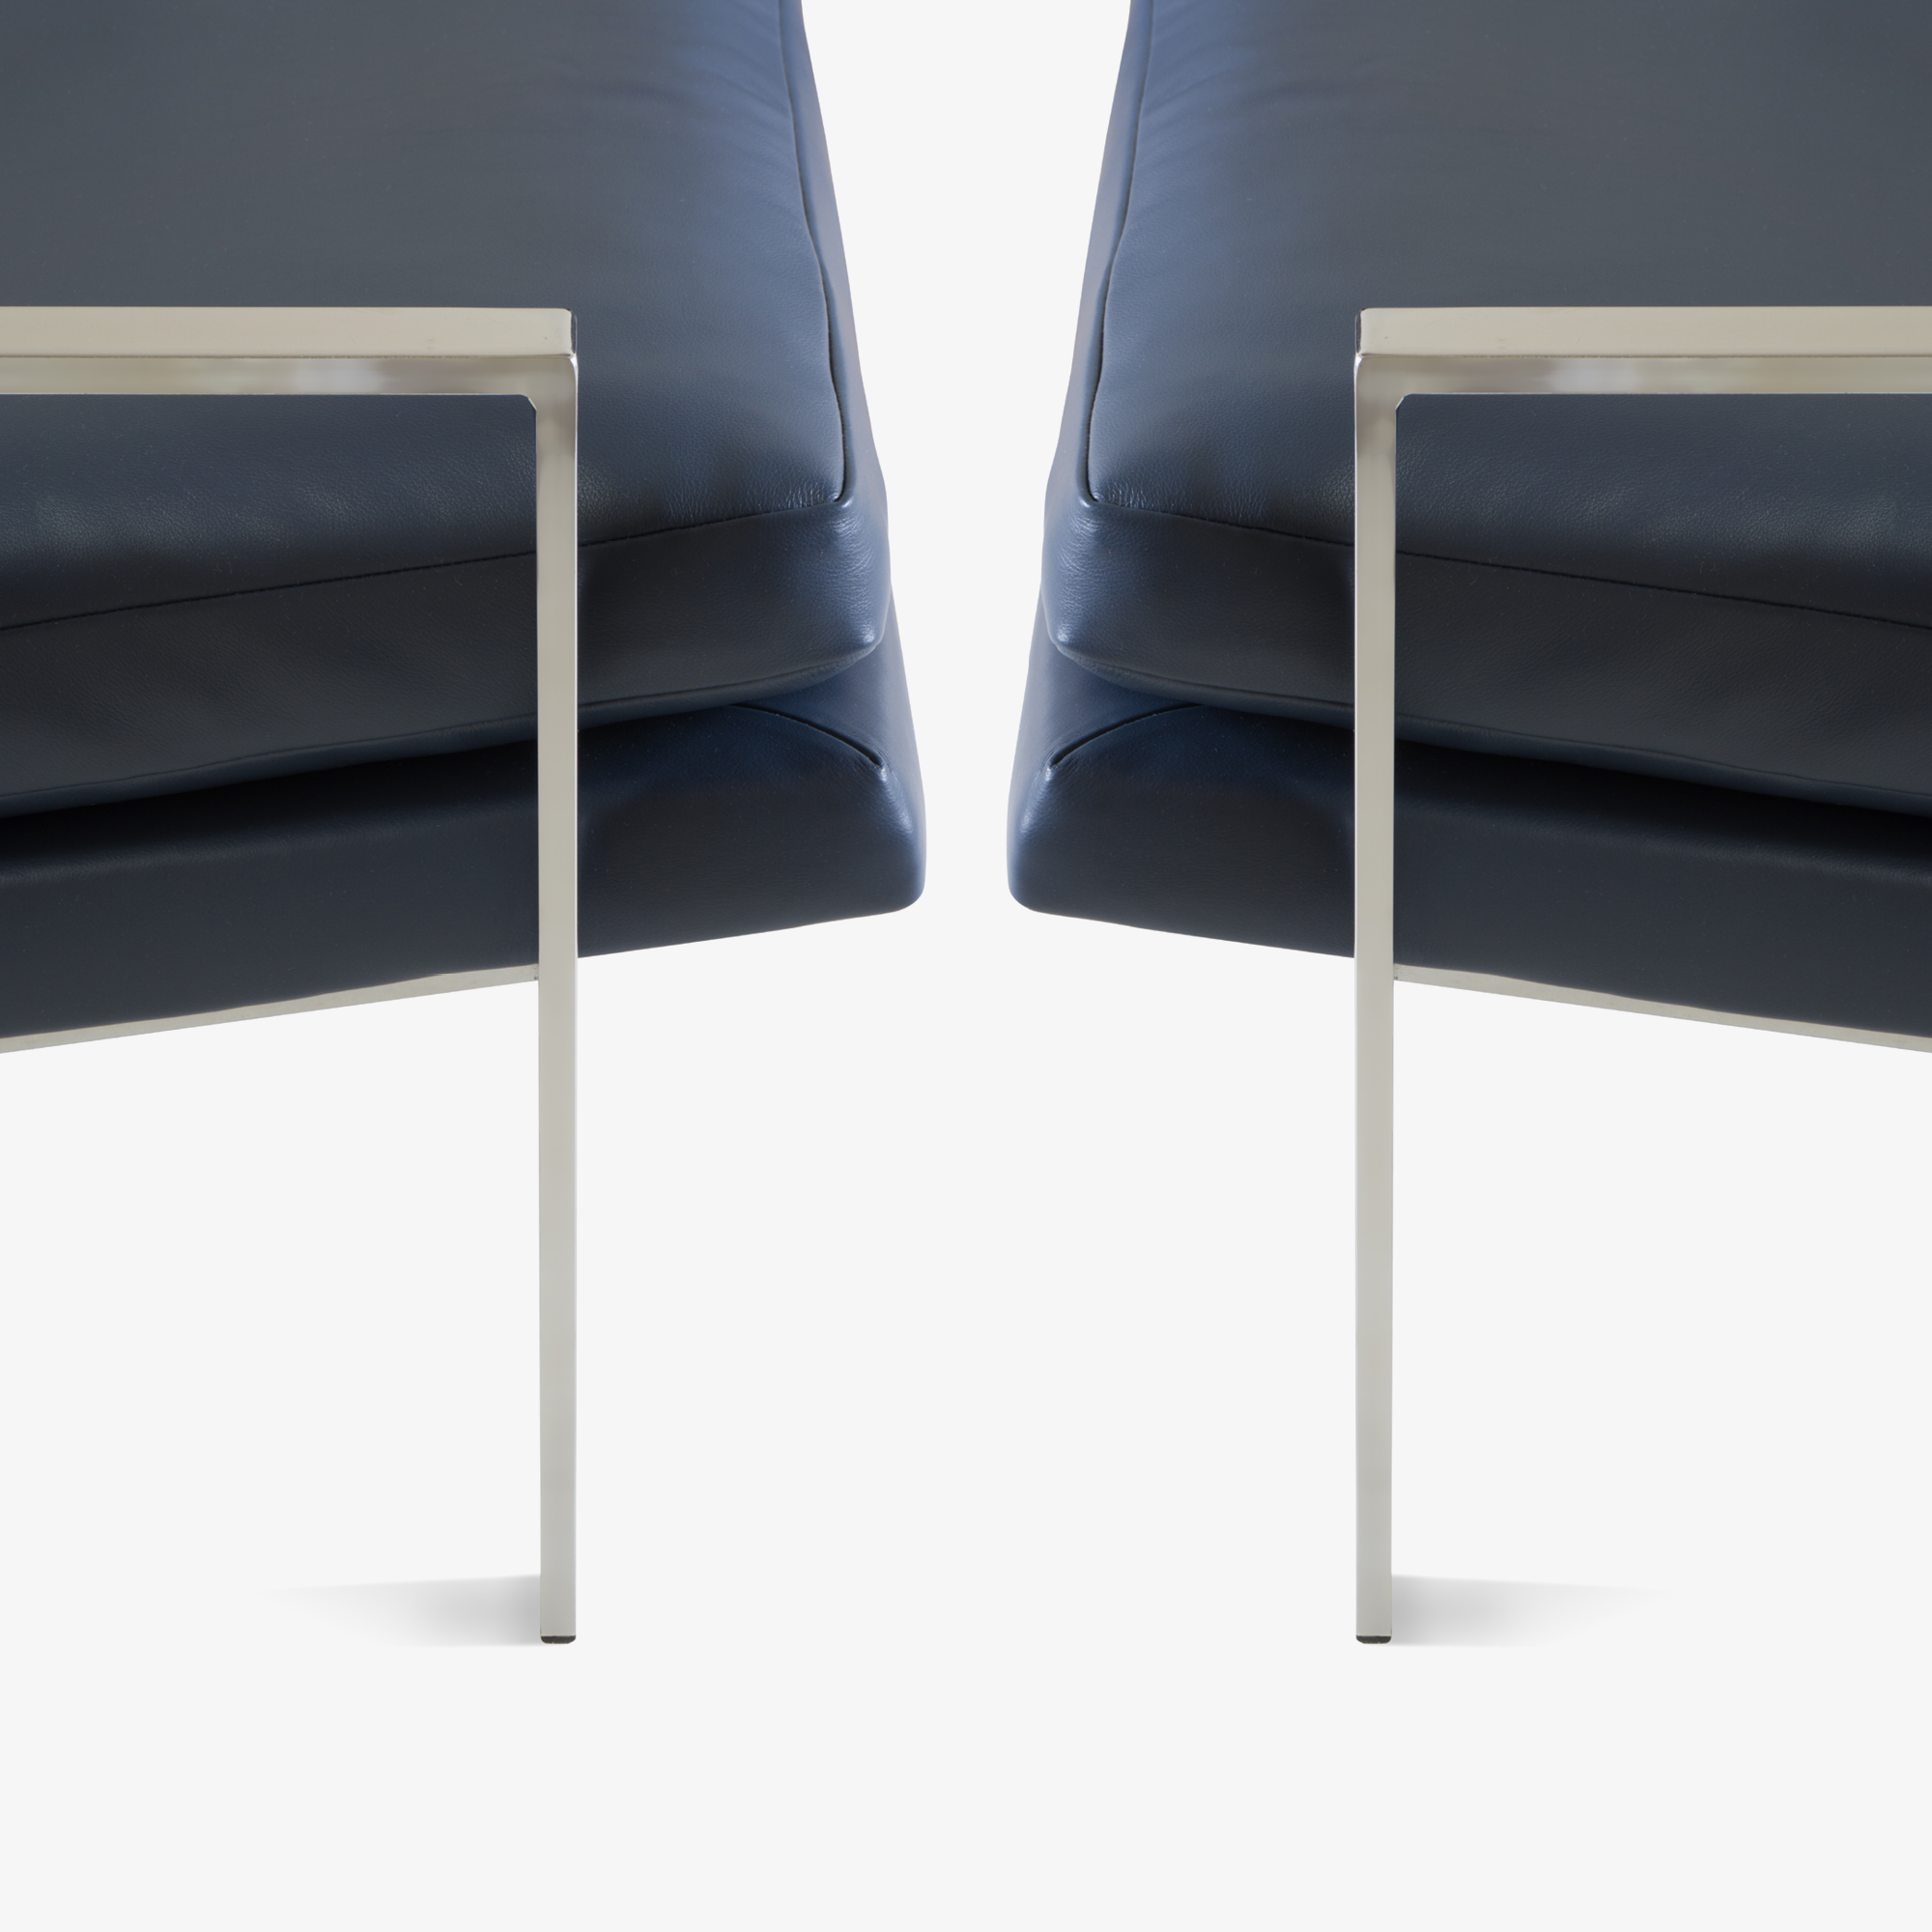 Flat-Bar Club Chairs in Navy Leather by Milo Baughman for Thayer Coggin8.png